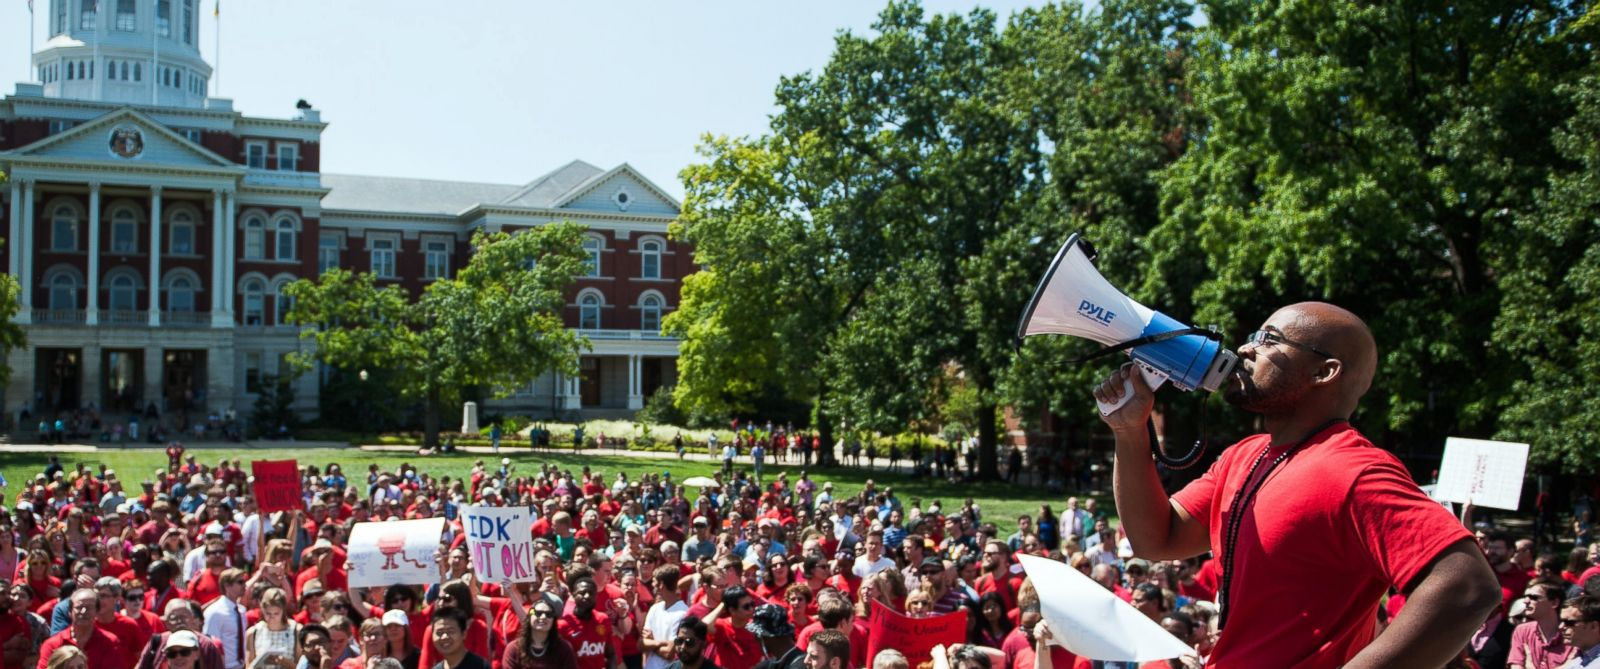 """PHOTO: Jonathan Butler uses a megaphone to encourage others to chant during a """"day of action"""" demonstration celebrating graduate students on the University of Missouri campus in Columbia, Mo. on Aug. 26, 2015."""